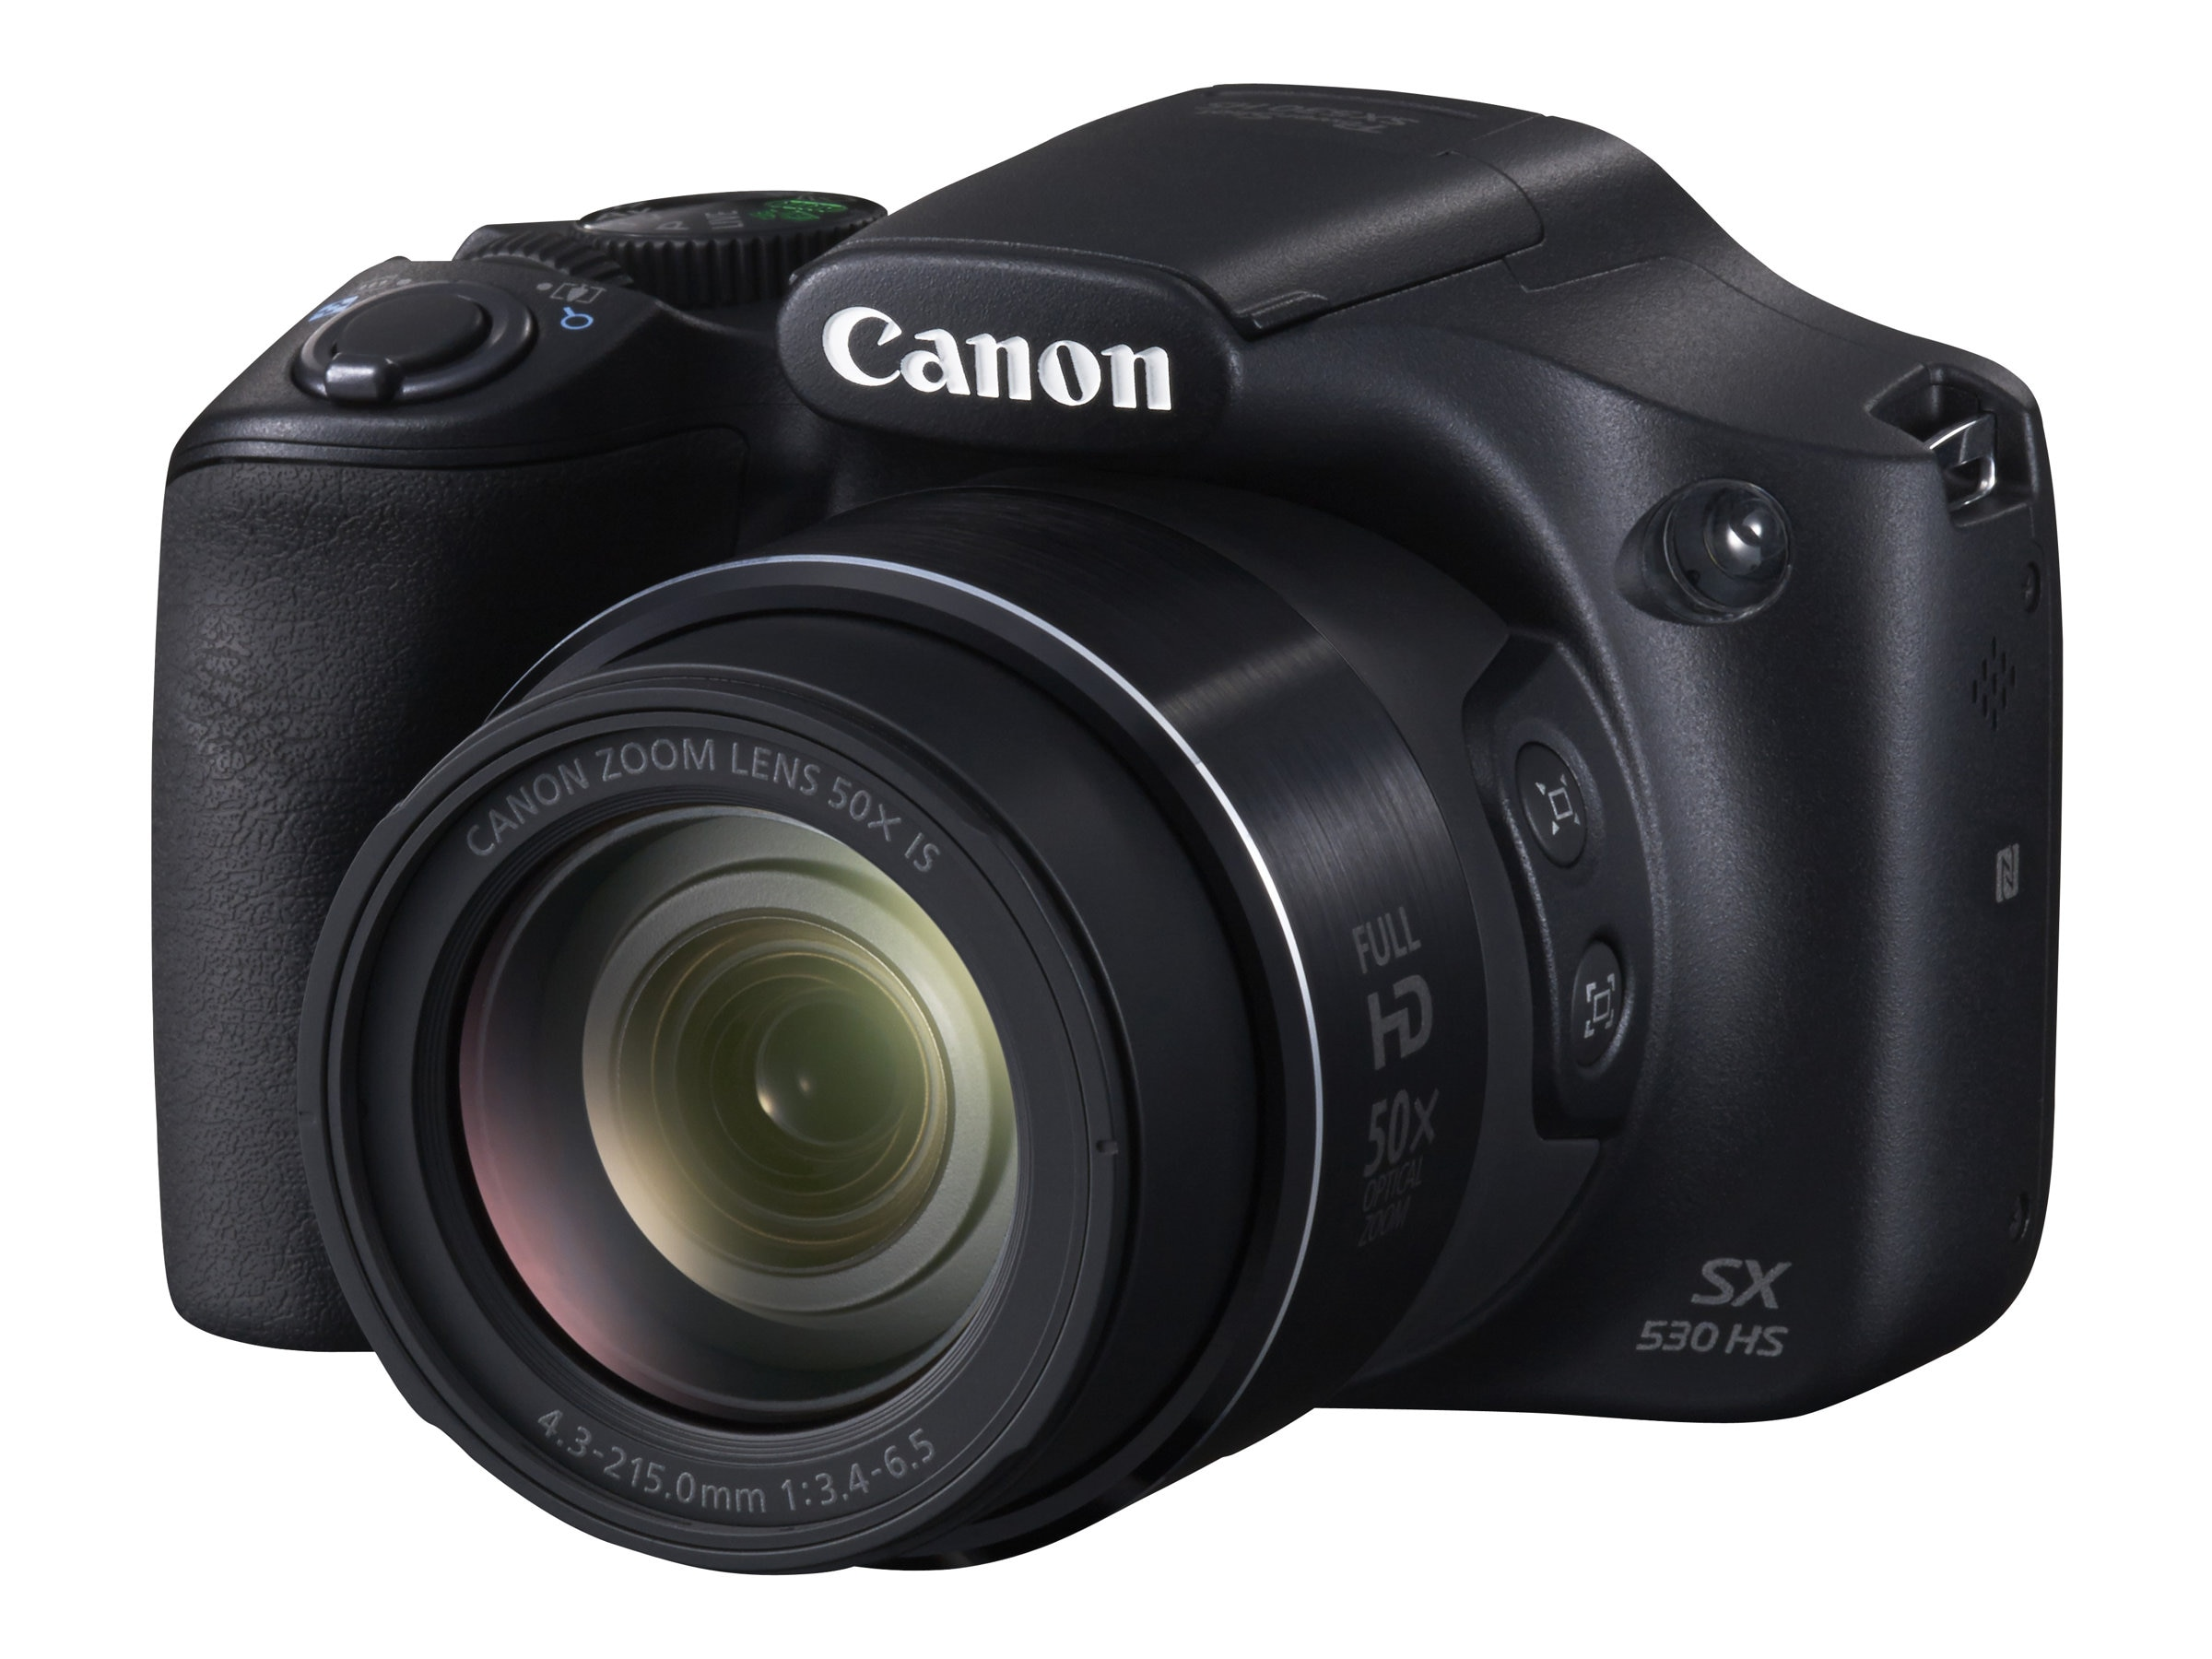 Canon PowerShot SX530 HS Camera, 16MP, 50x Zoom, Black, 9779B001, 18524195, Cameras - Digital - Point & Shoot